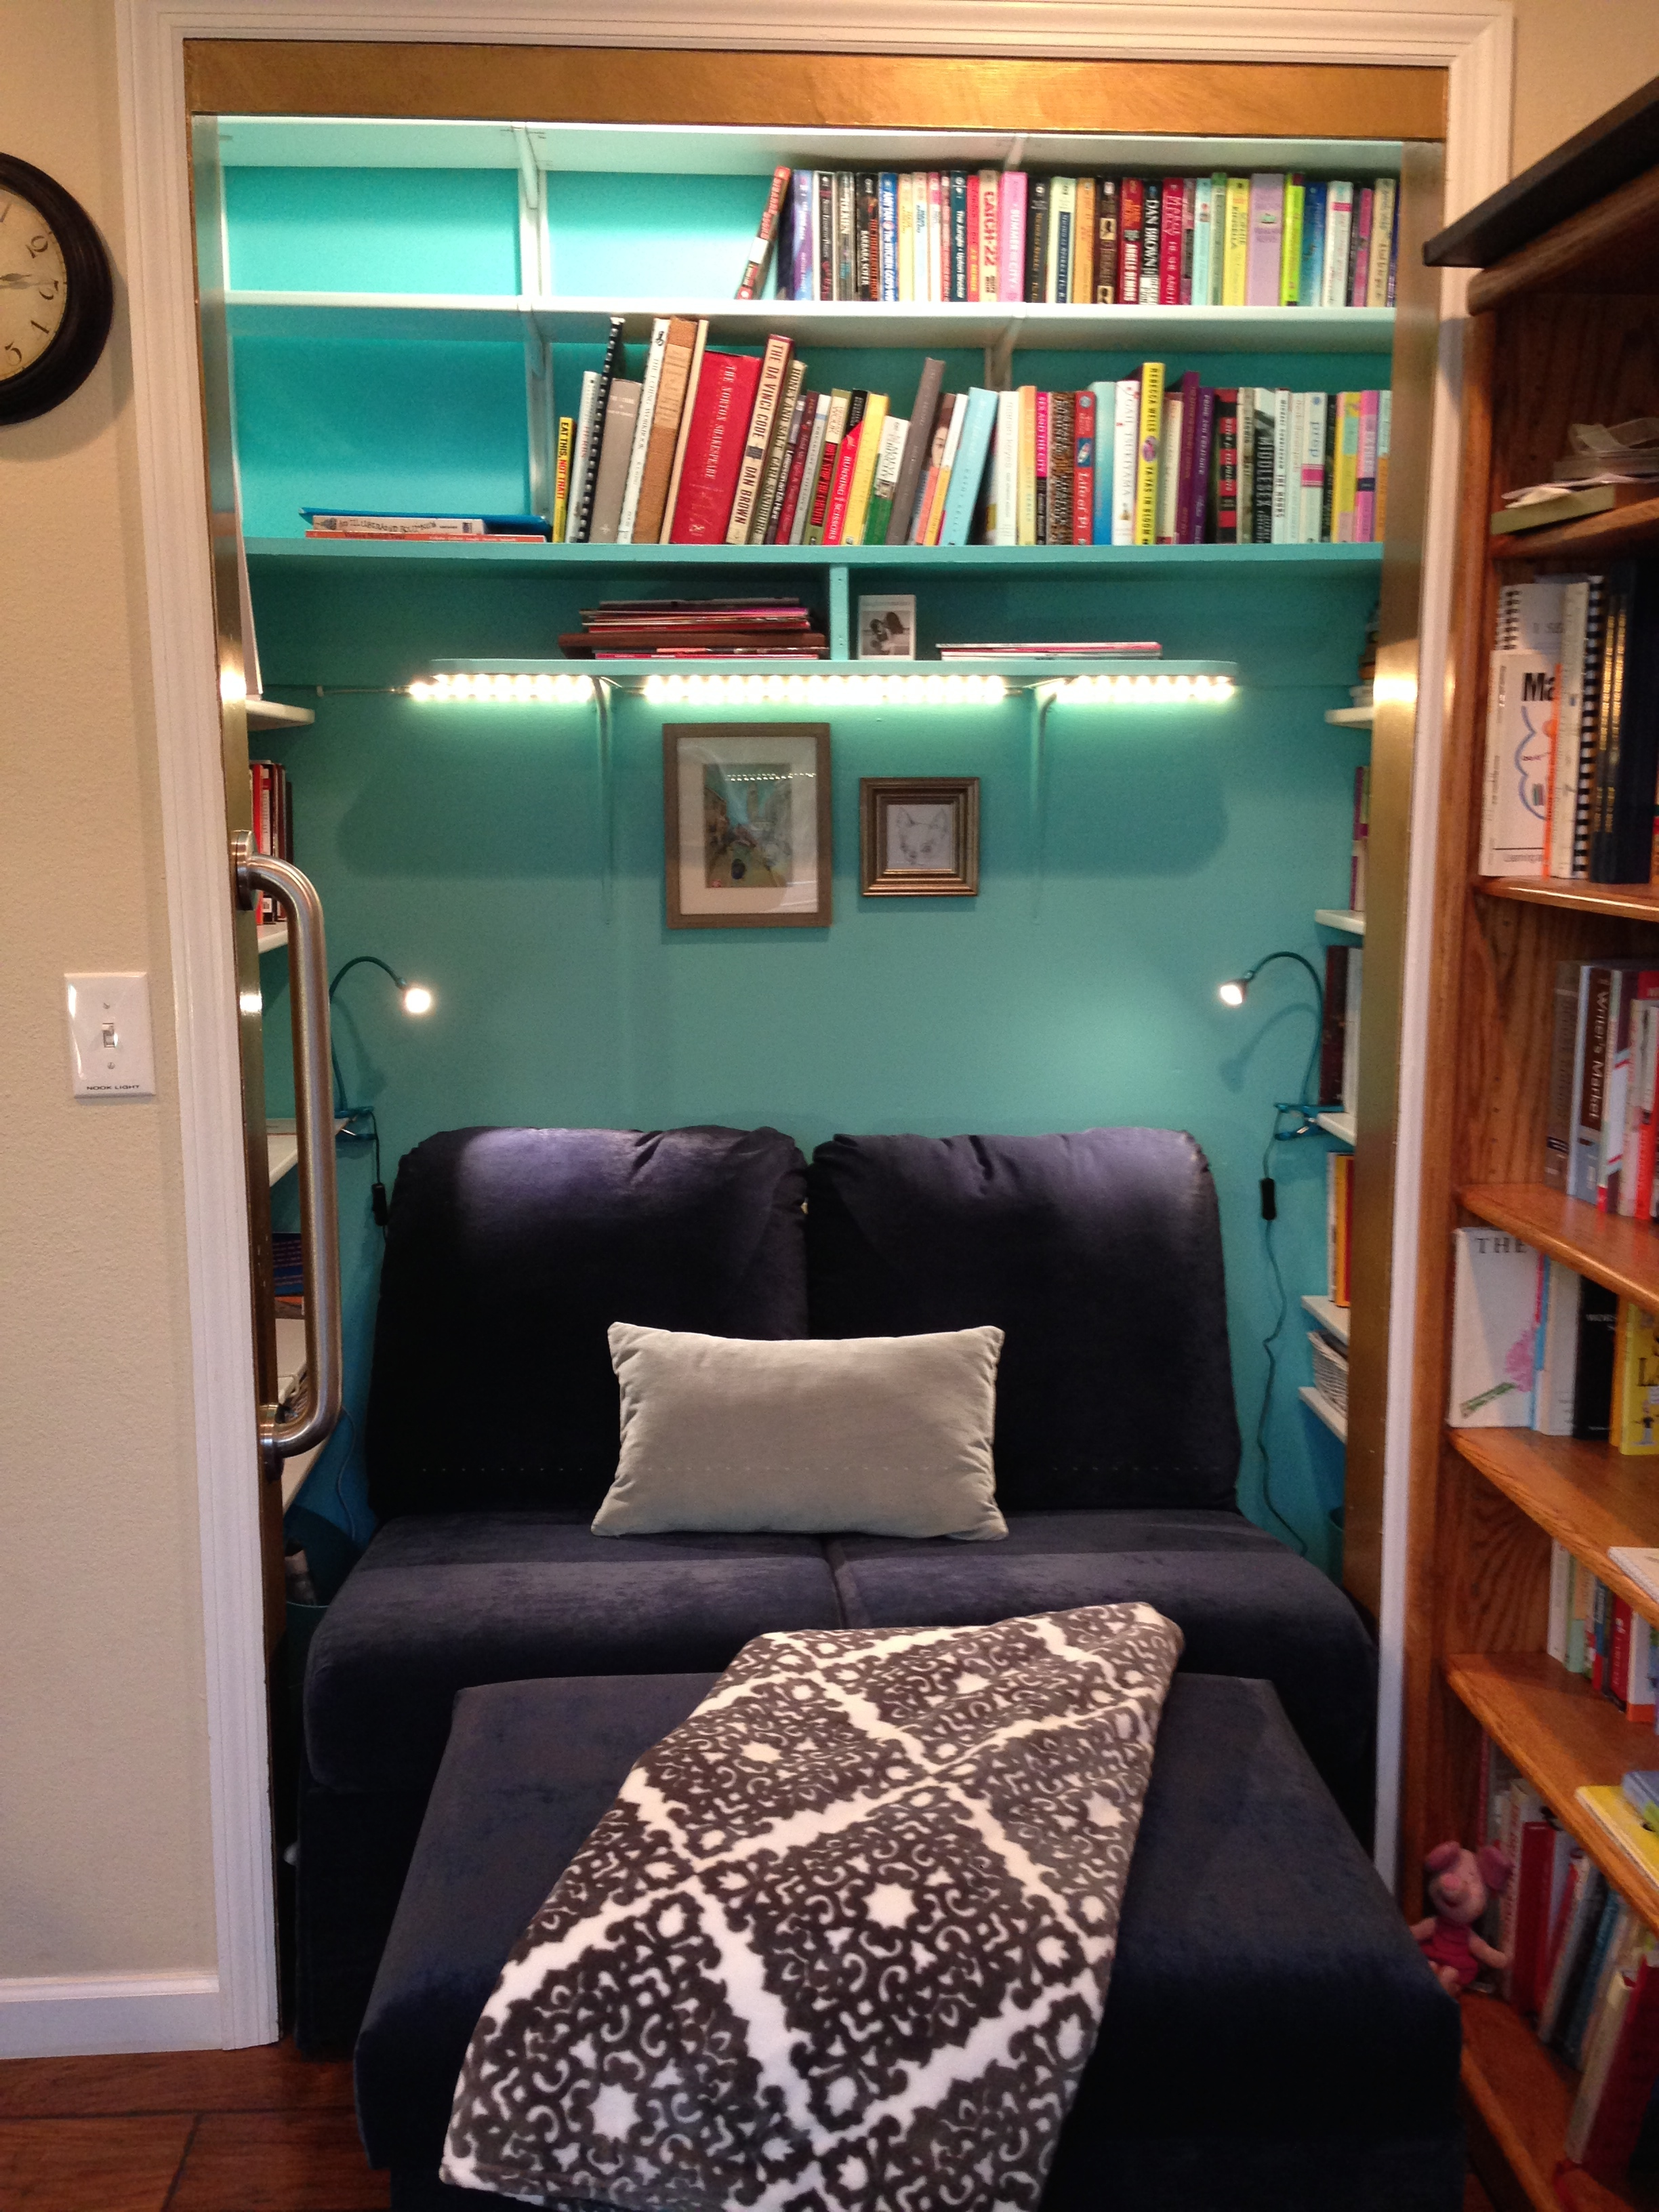 Exceptional Reading Nook Closet